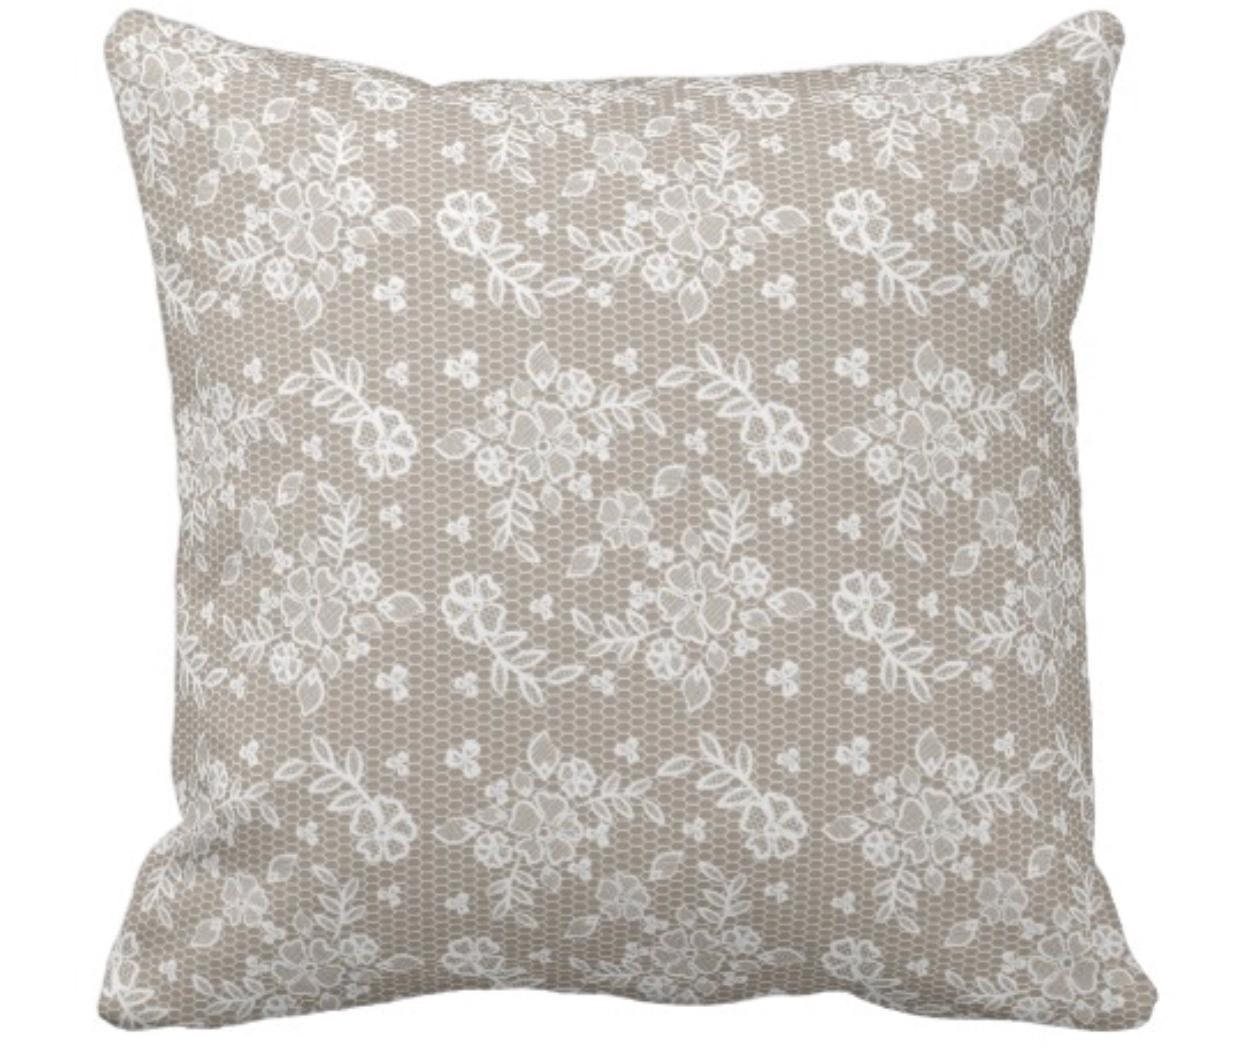 Throw Pillow Rustic Decor Lace Trim Burlap Farmhouse Decor Decorative Pillow Home Decor Pillows Fall Decor Home Sweet Home